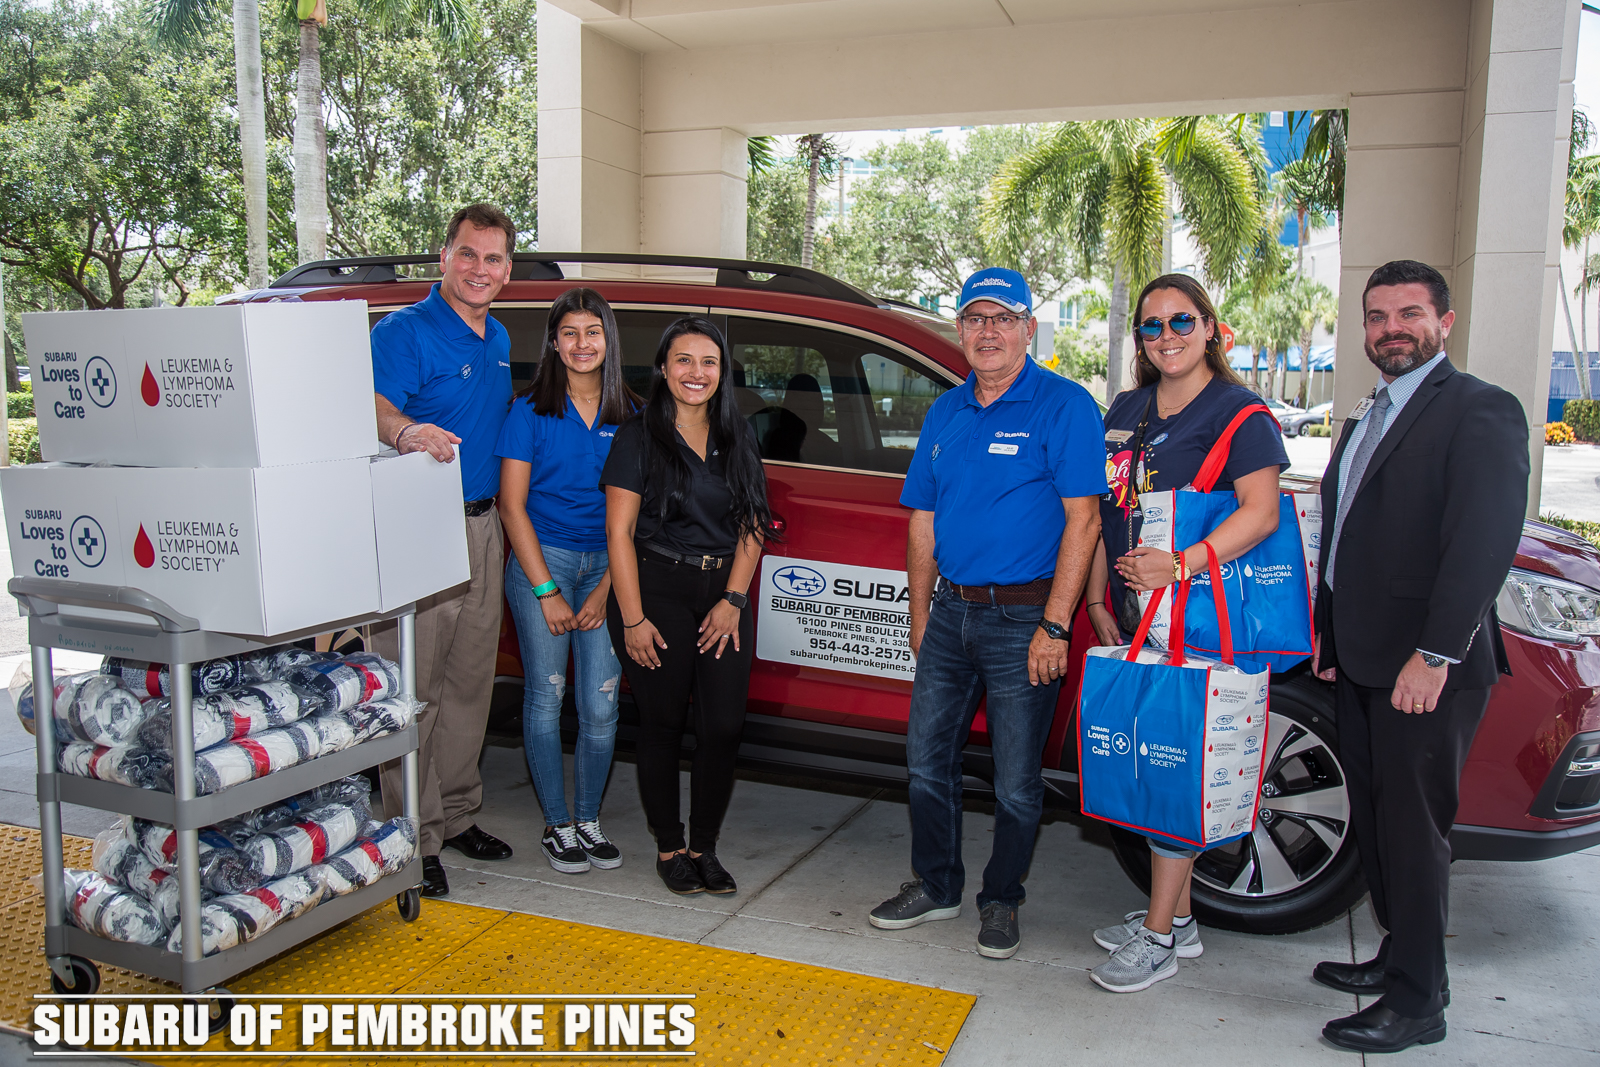 Subaru Of Pembroke Pines >> Subaru Of Pembroke Pines And The Leukemia Lymphoma Society